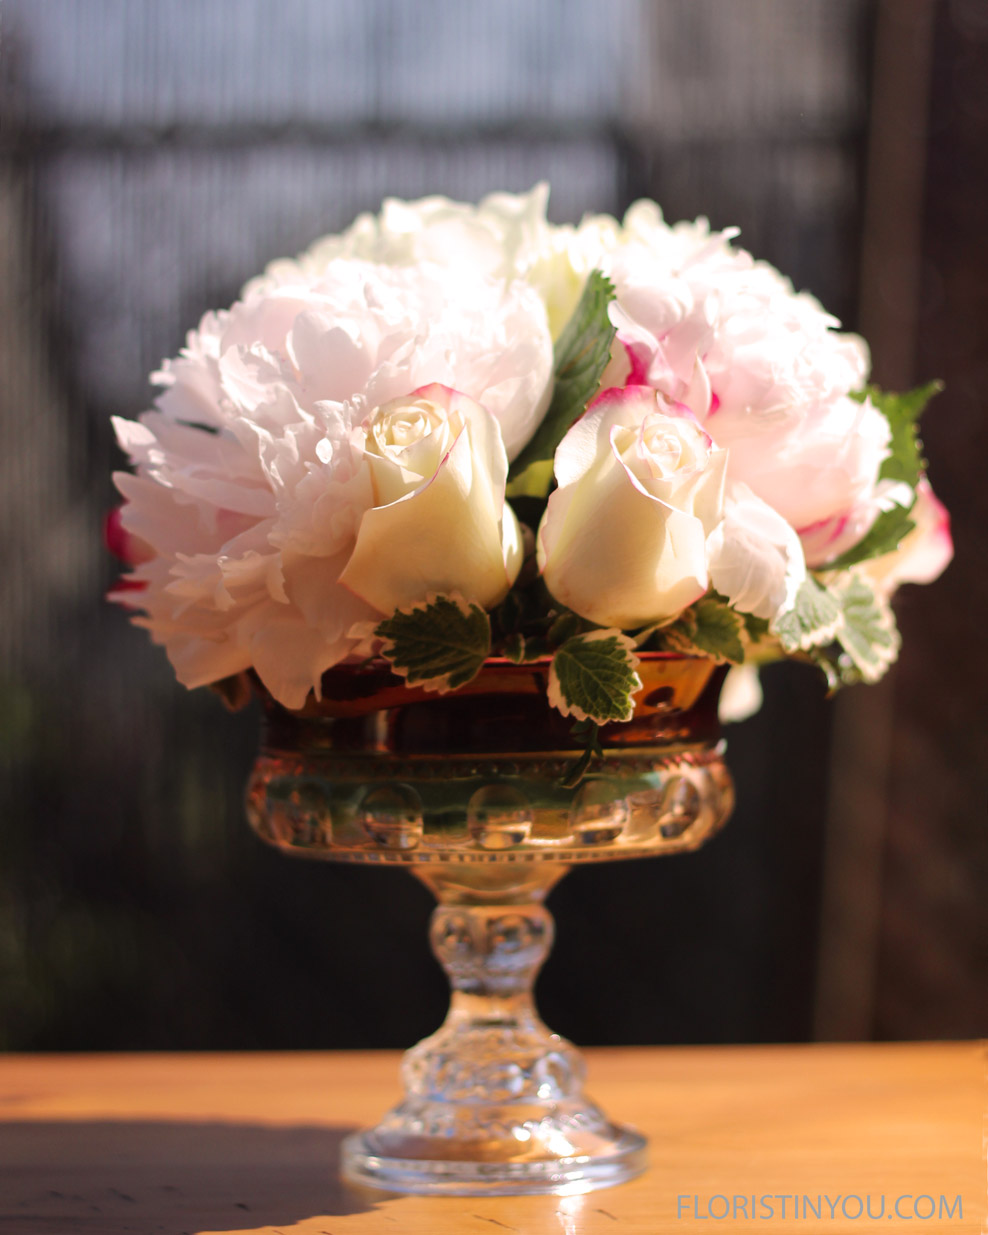 The Ruby Red Band Vase uses 1 hydrangea, 2 peony, and 4 - 6 roses.